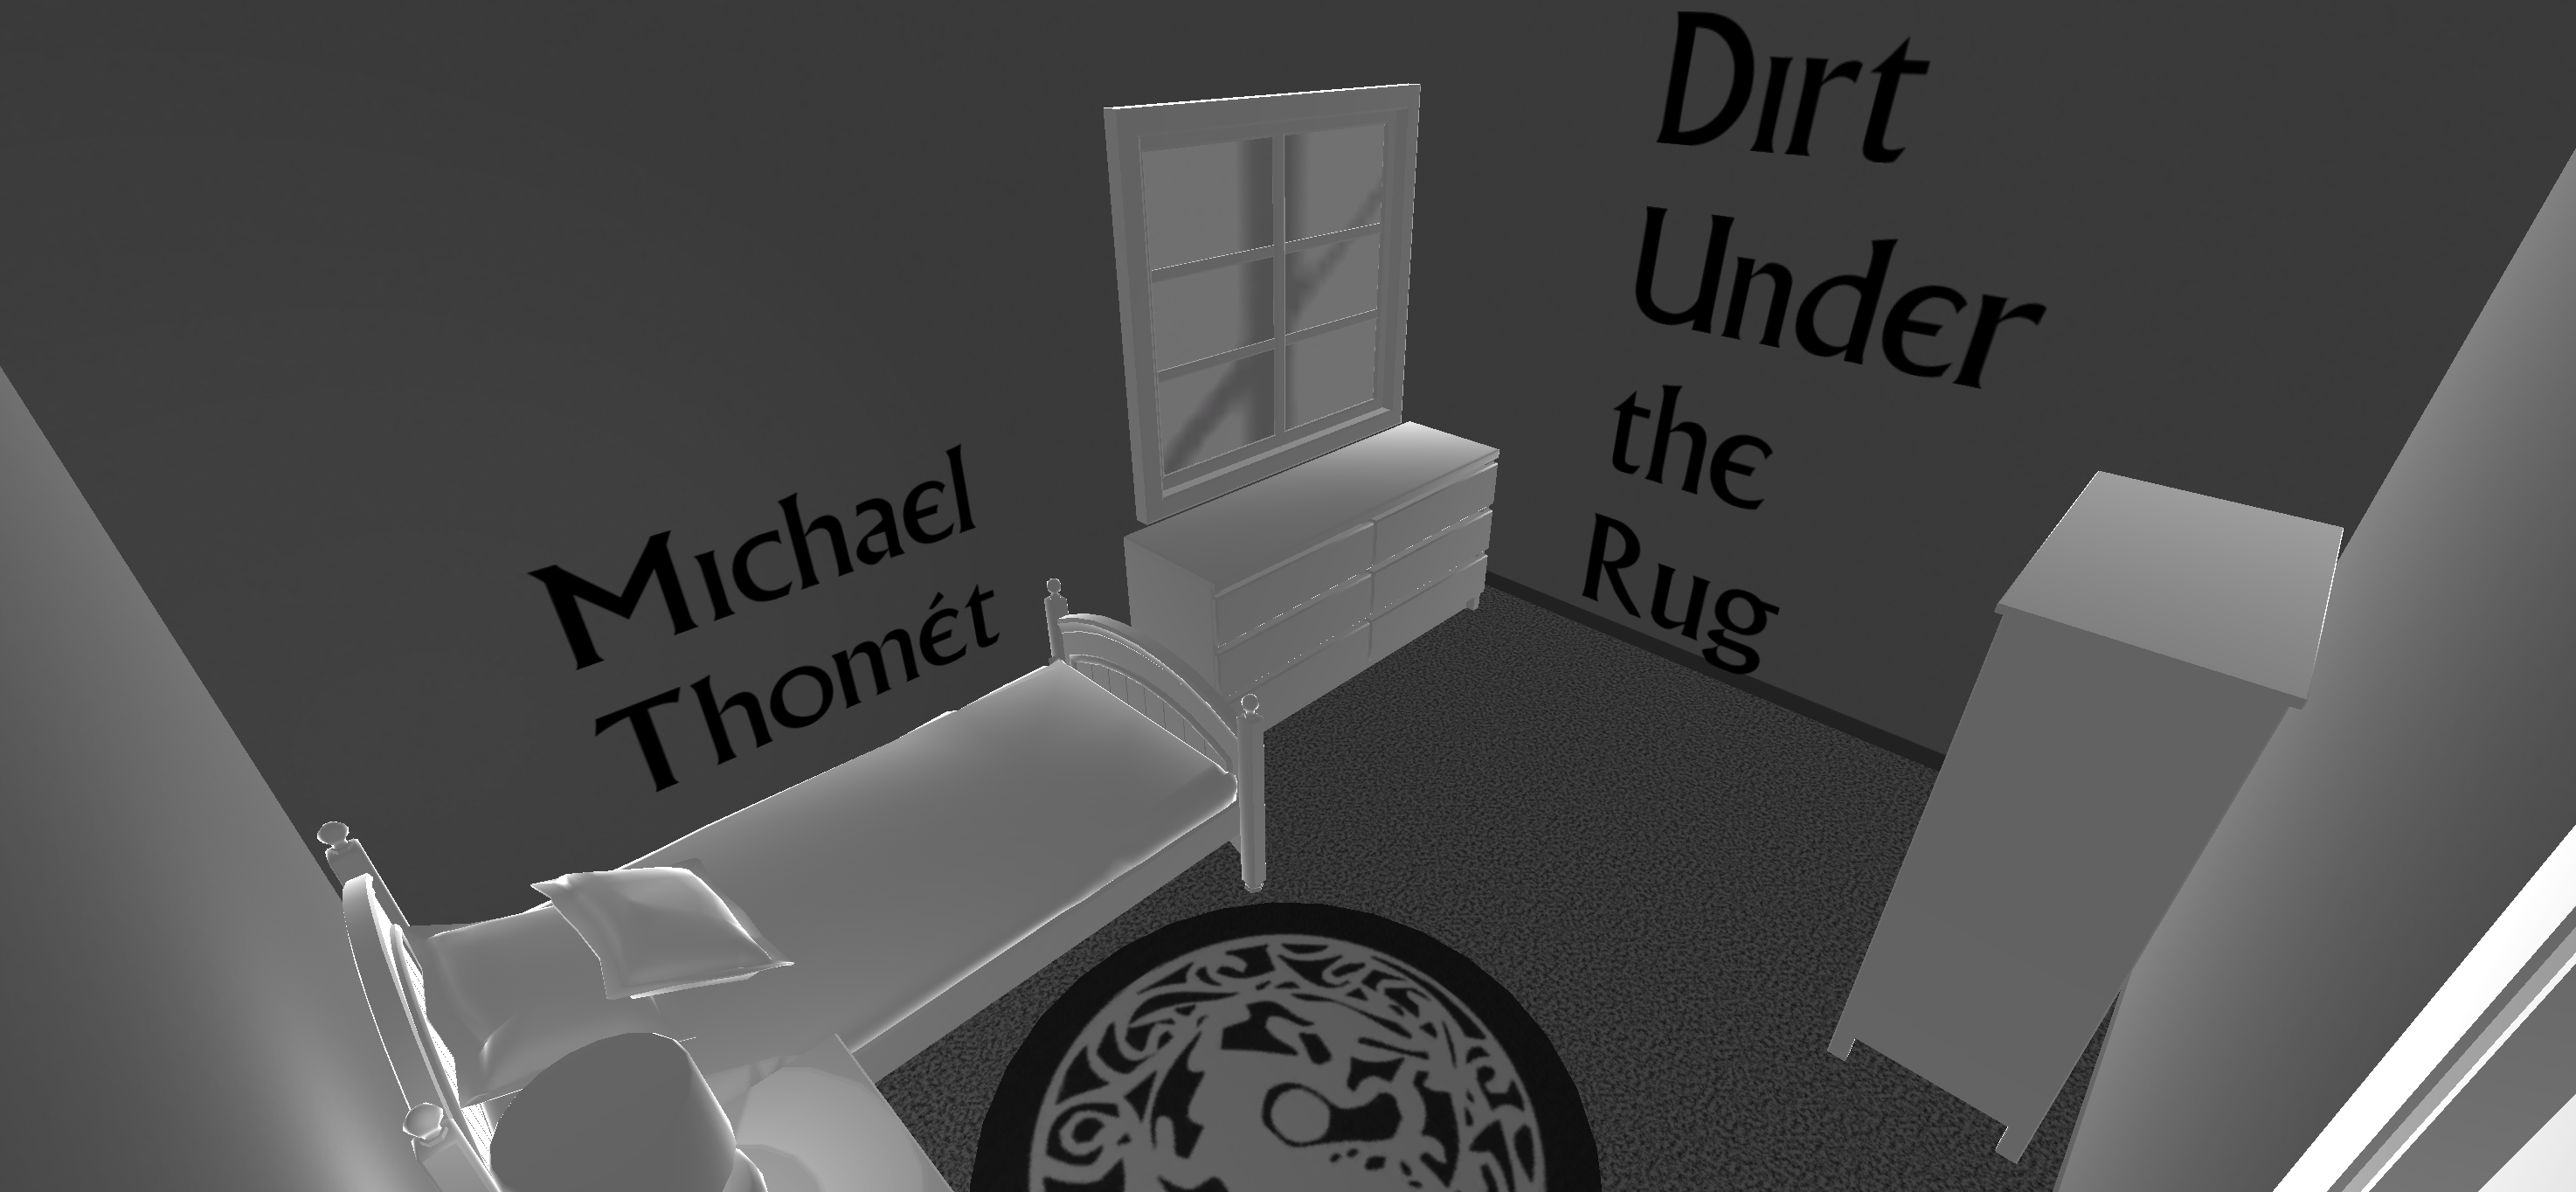 Dirt Under the Rug